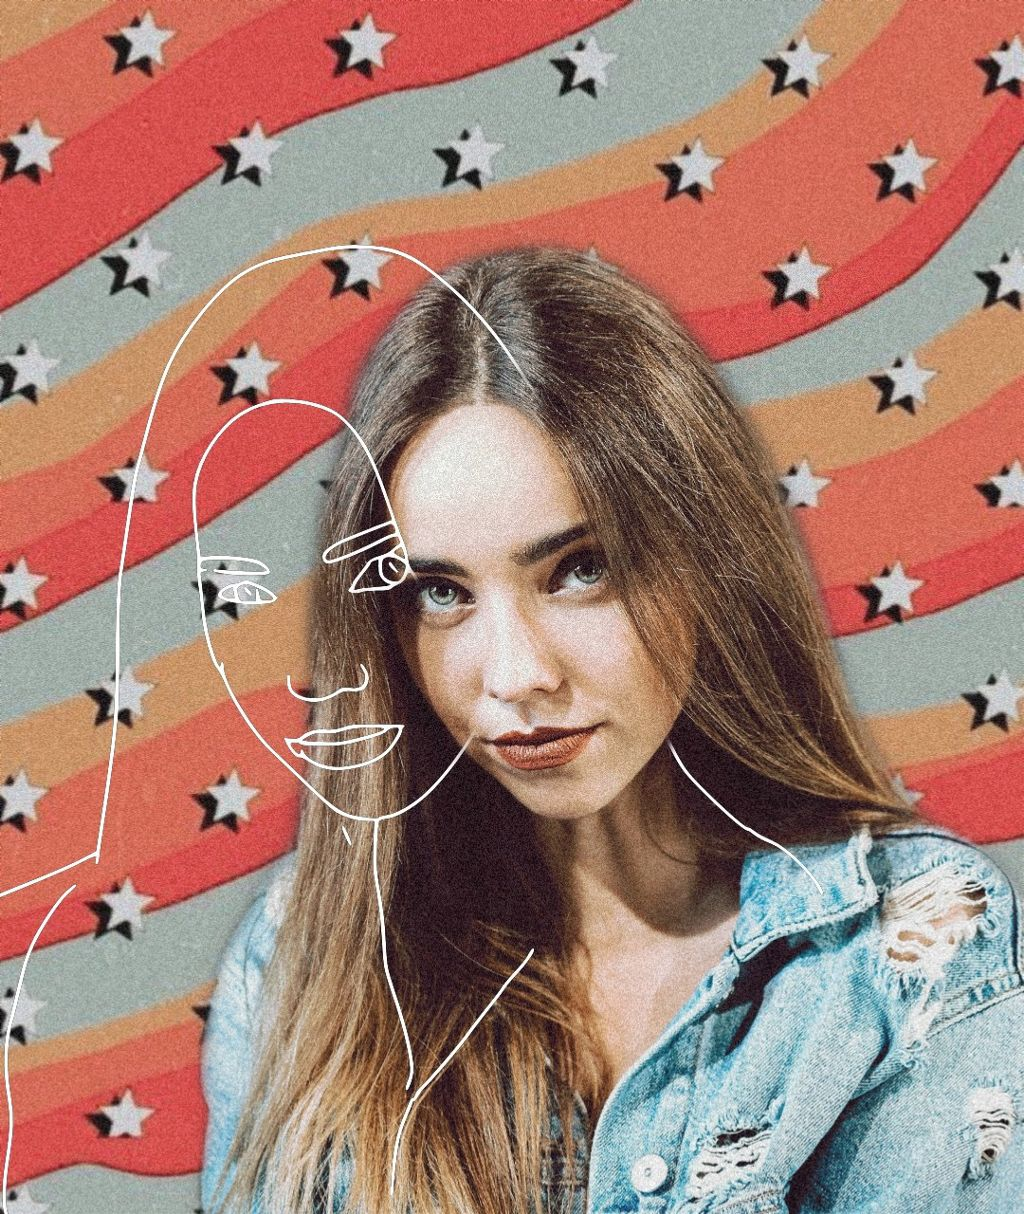 Bring Fall colors to your photos while still keeping your 𝙖𝙚𝙨𝙩𝙝𝙚𝙩𝙞𝙘 😎👌 Edit by @grace252 #aesthethic #stars #wavy #sketch #freetoedit